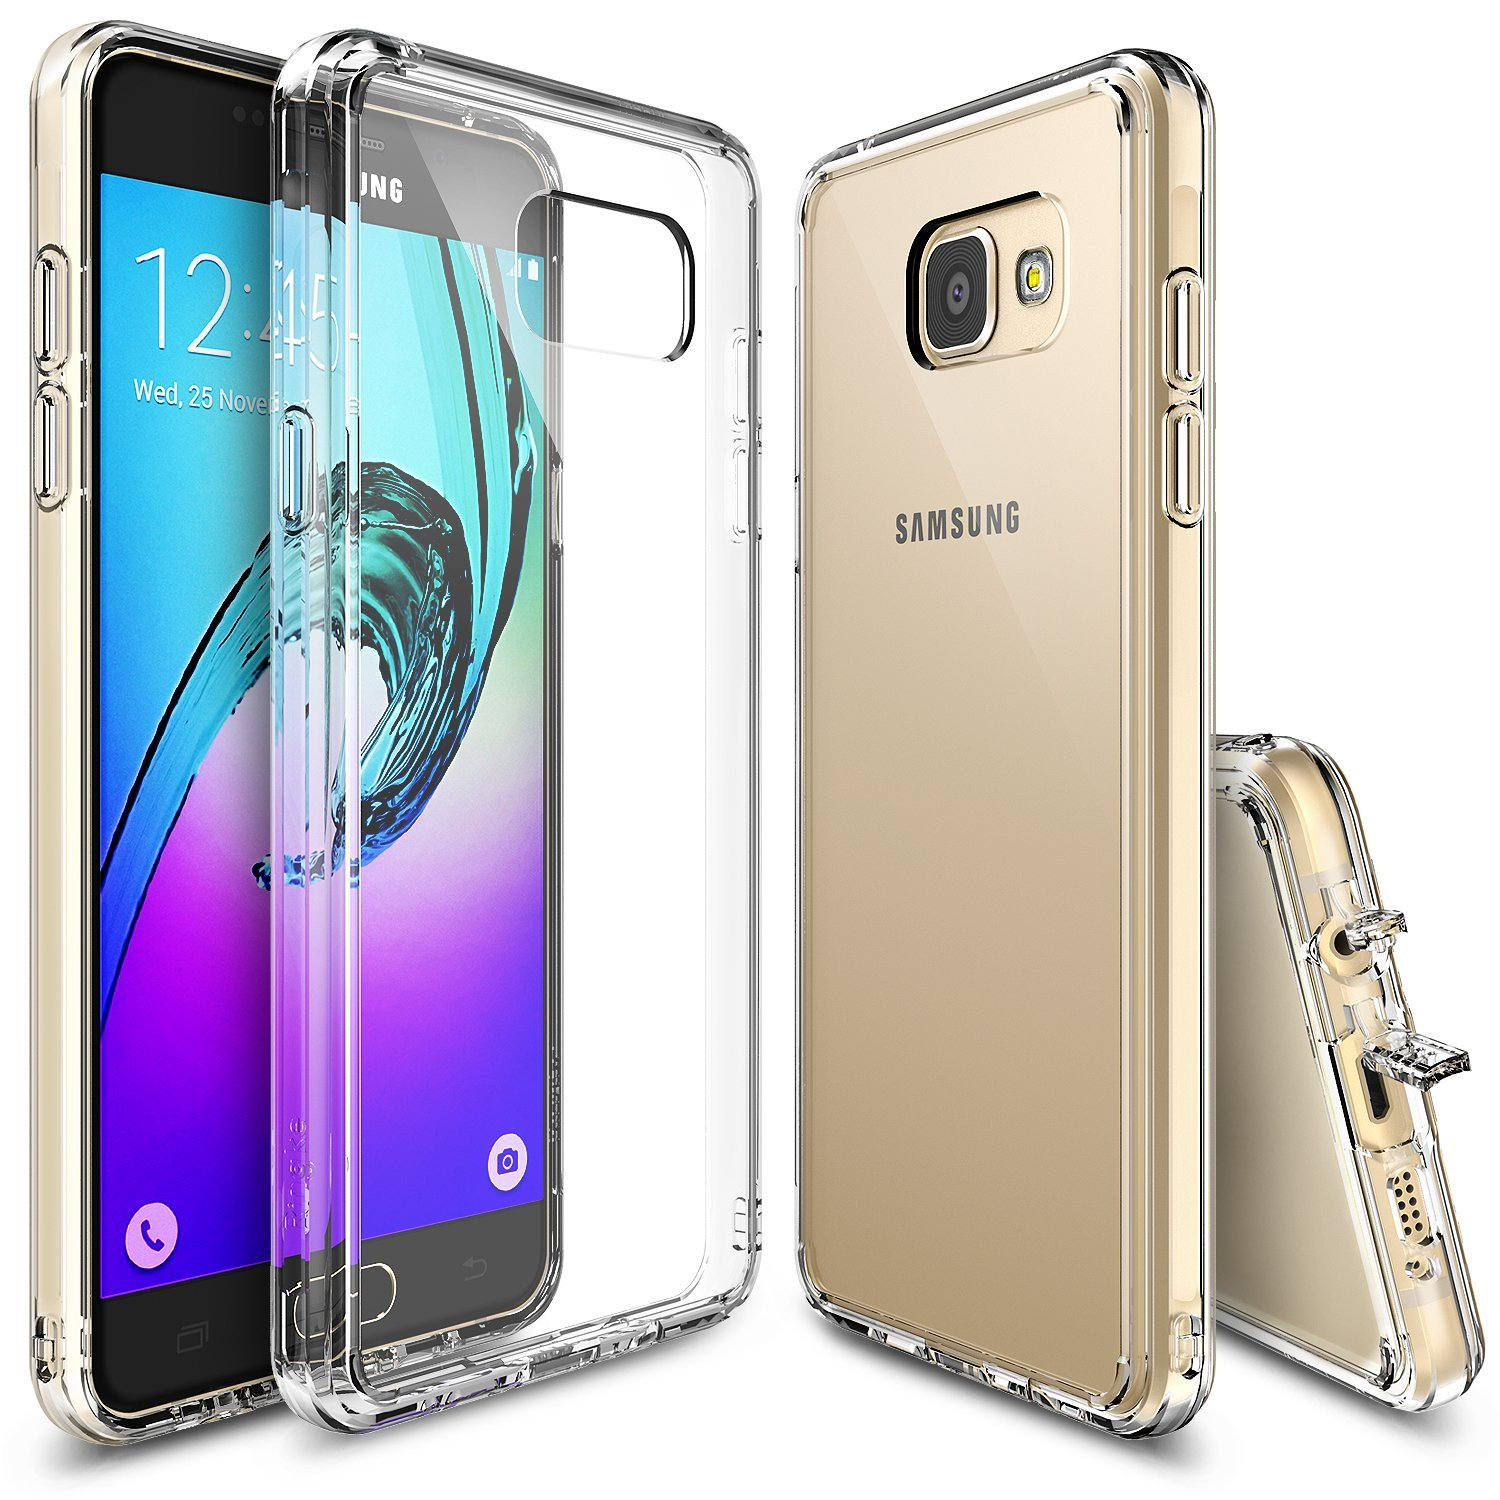 Samsung Galaxy A7 Case, Ringke [Clear] FUSION Series Slim & Flexible Anti-shock Crystal Silicone Protective TPU Gel Skin Case Cover